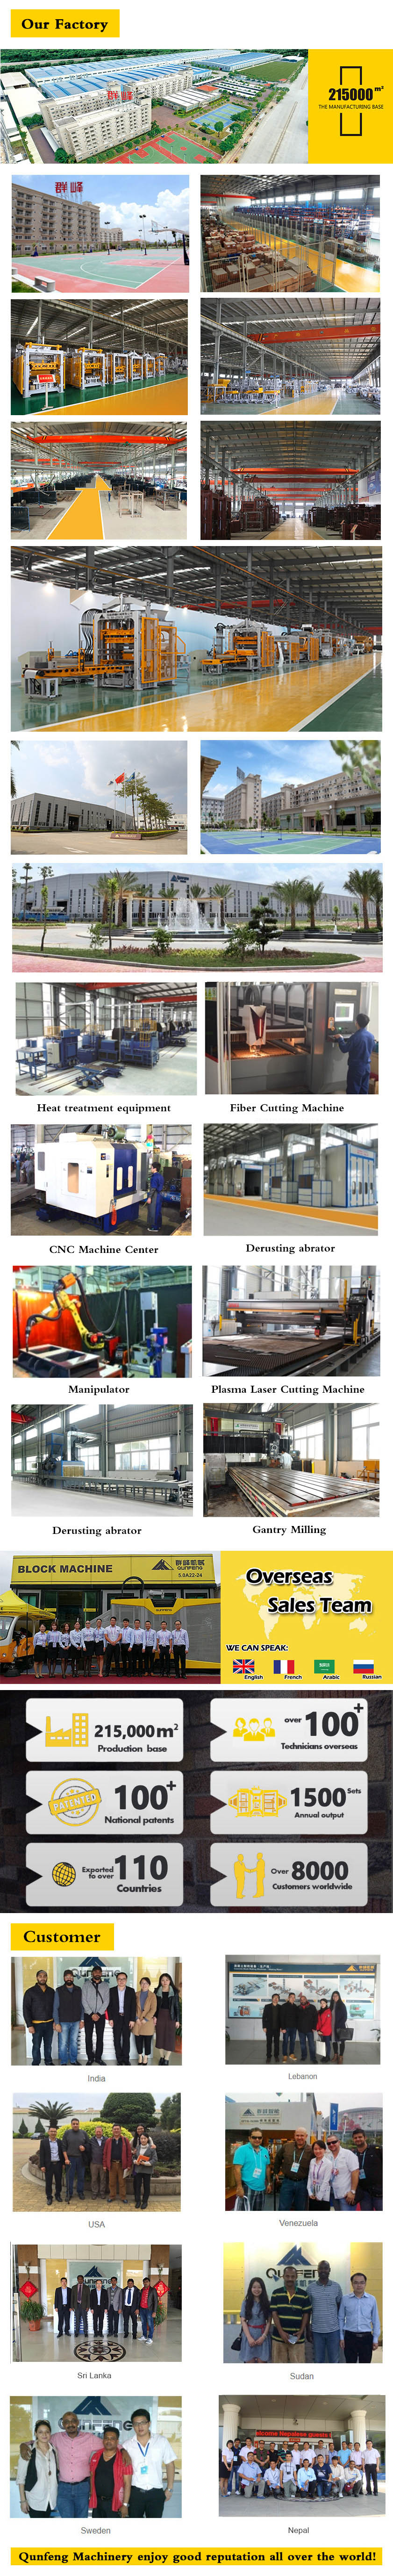 Mobile waste processing equipment